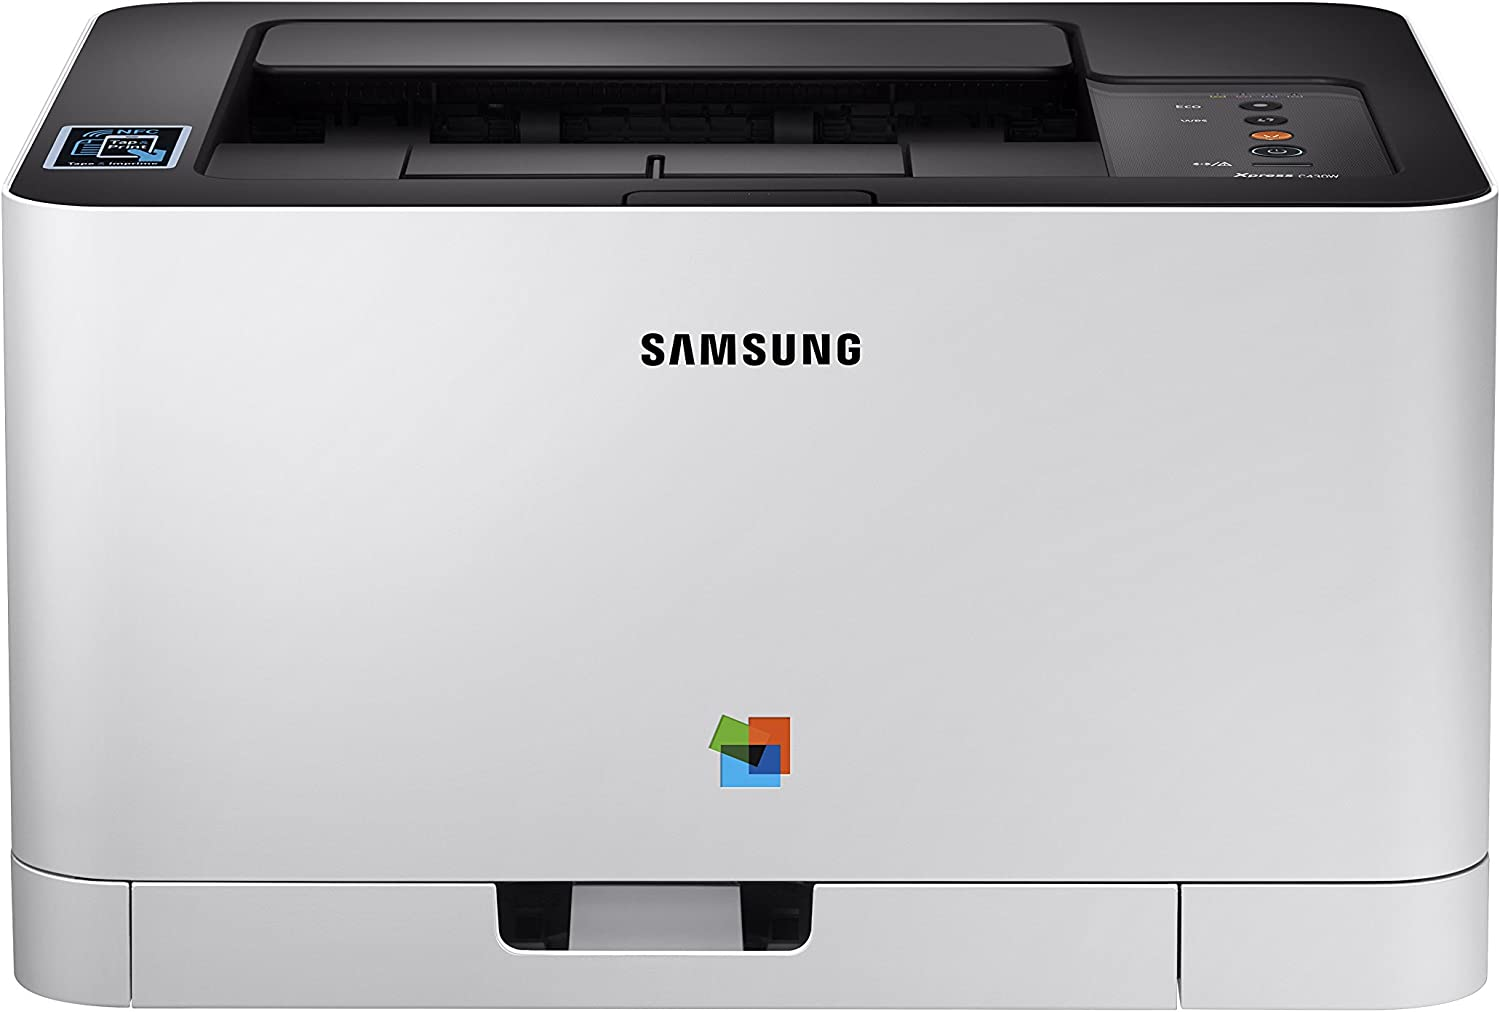 Samsung Xpress C430W Wireless Color Laser Printer with Simple NFC + WiFi Connectivity and Built-in Ethernet (SS230G)